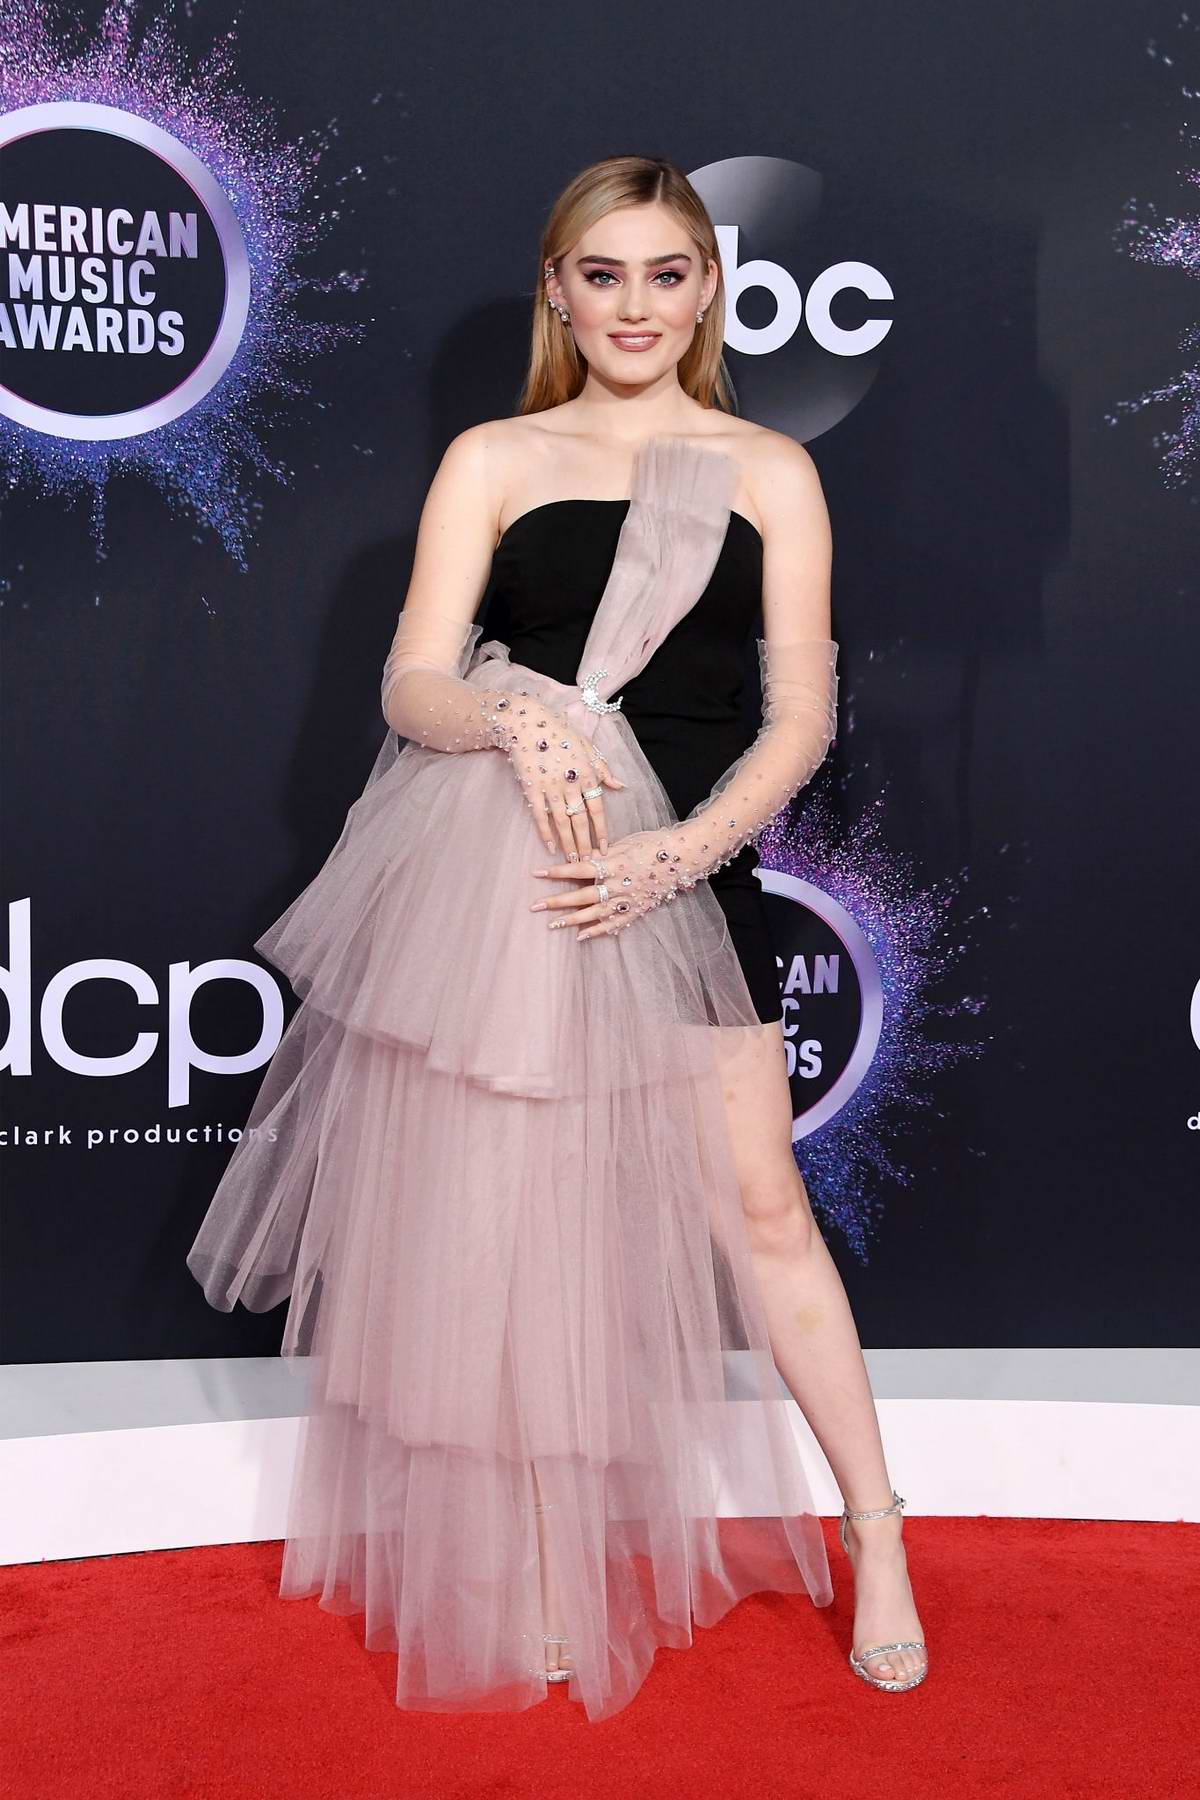 Meg Donnelly attends the 2019 American Music Awards at Microsoft Theater in Los Angeles